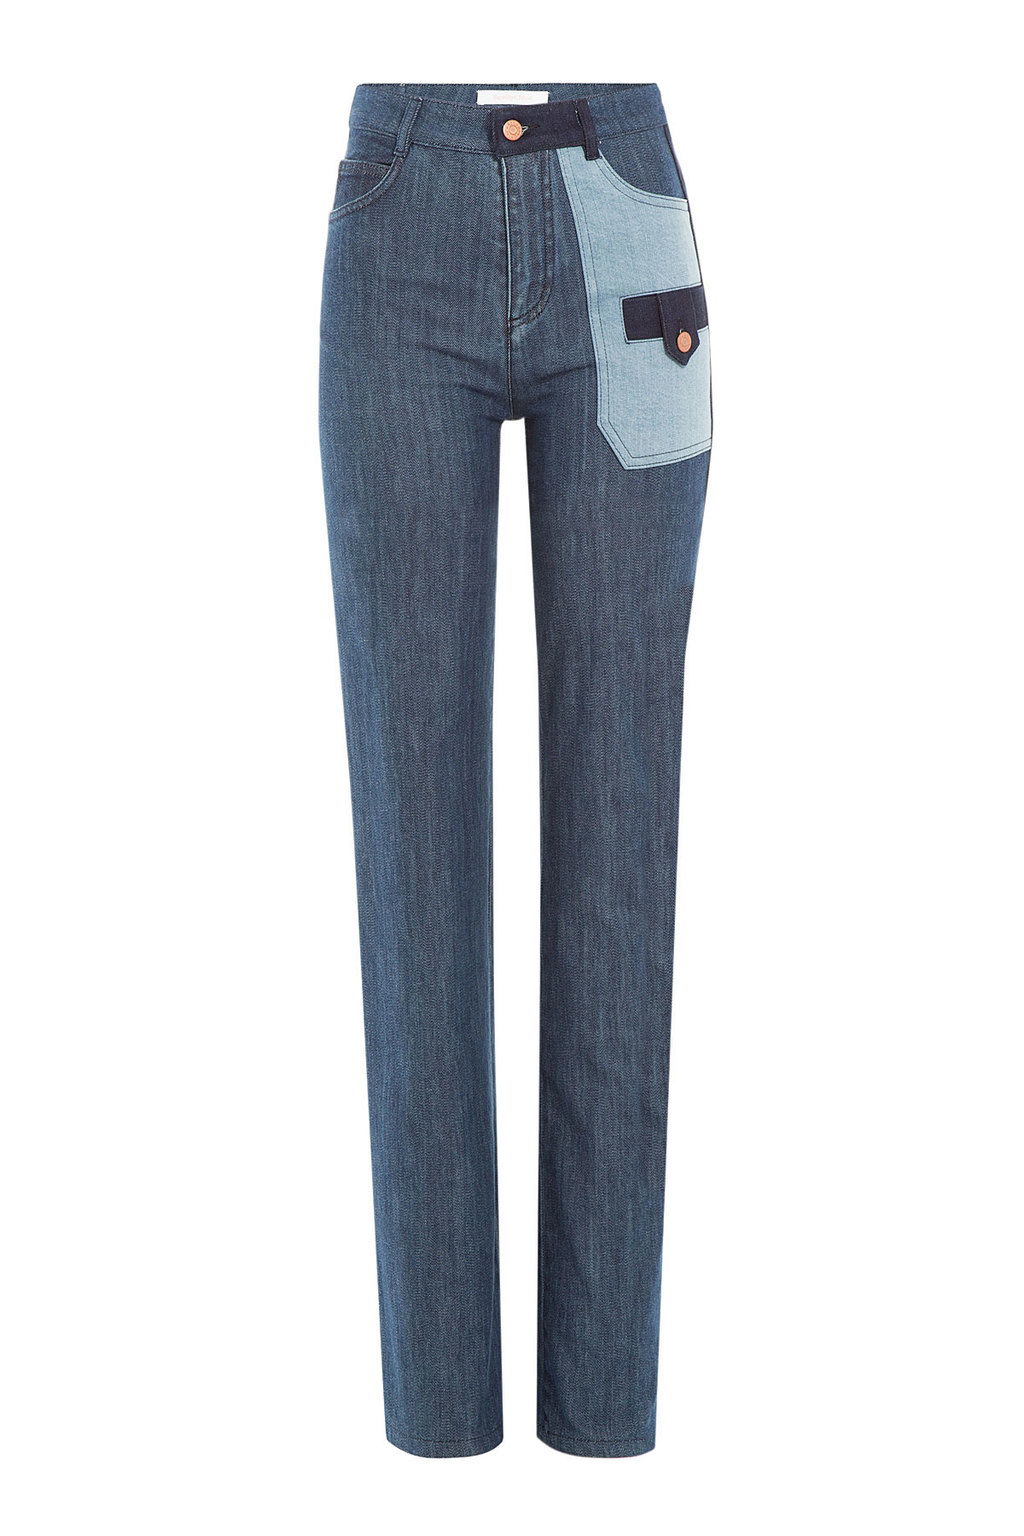 Flared Jeans - style: flares; length: standard; waist: high rise; pocket detail: traditional 5 pocket; predominant colour: denim; occasions: casual; fibres: cotton - stretch; texture group: denim; pattern type: fabric; pattern: colourblock; season: a/w 2015; wardrobe: highlight